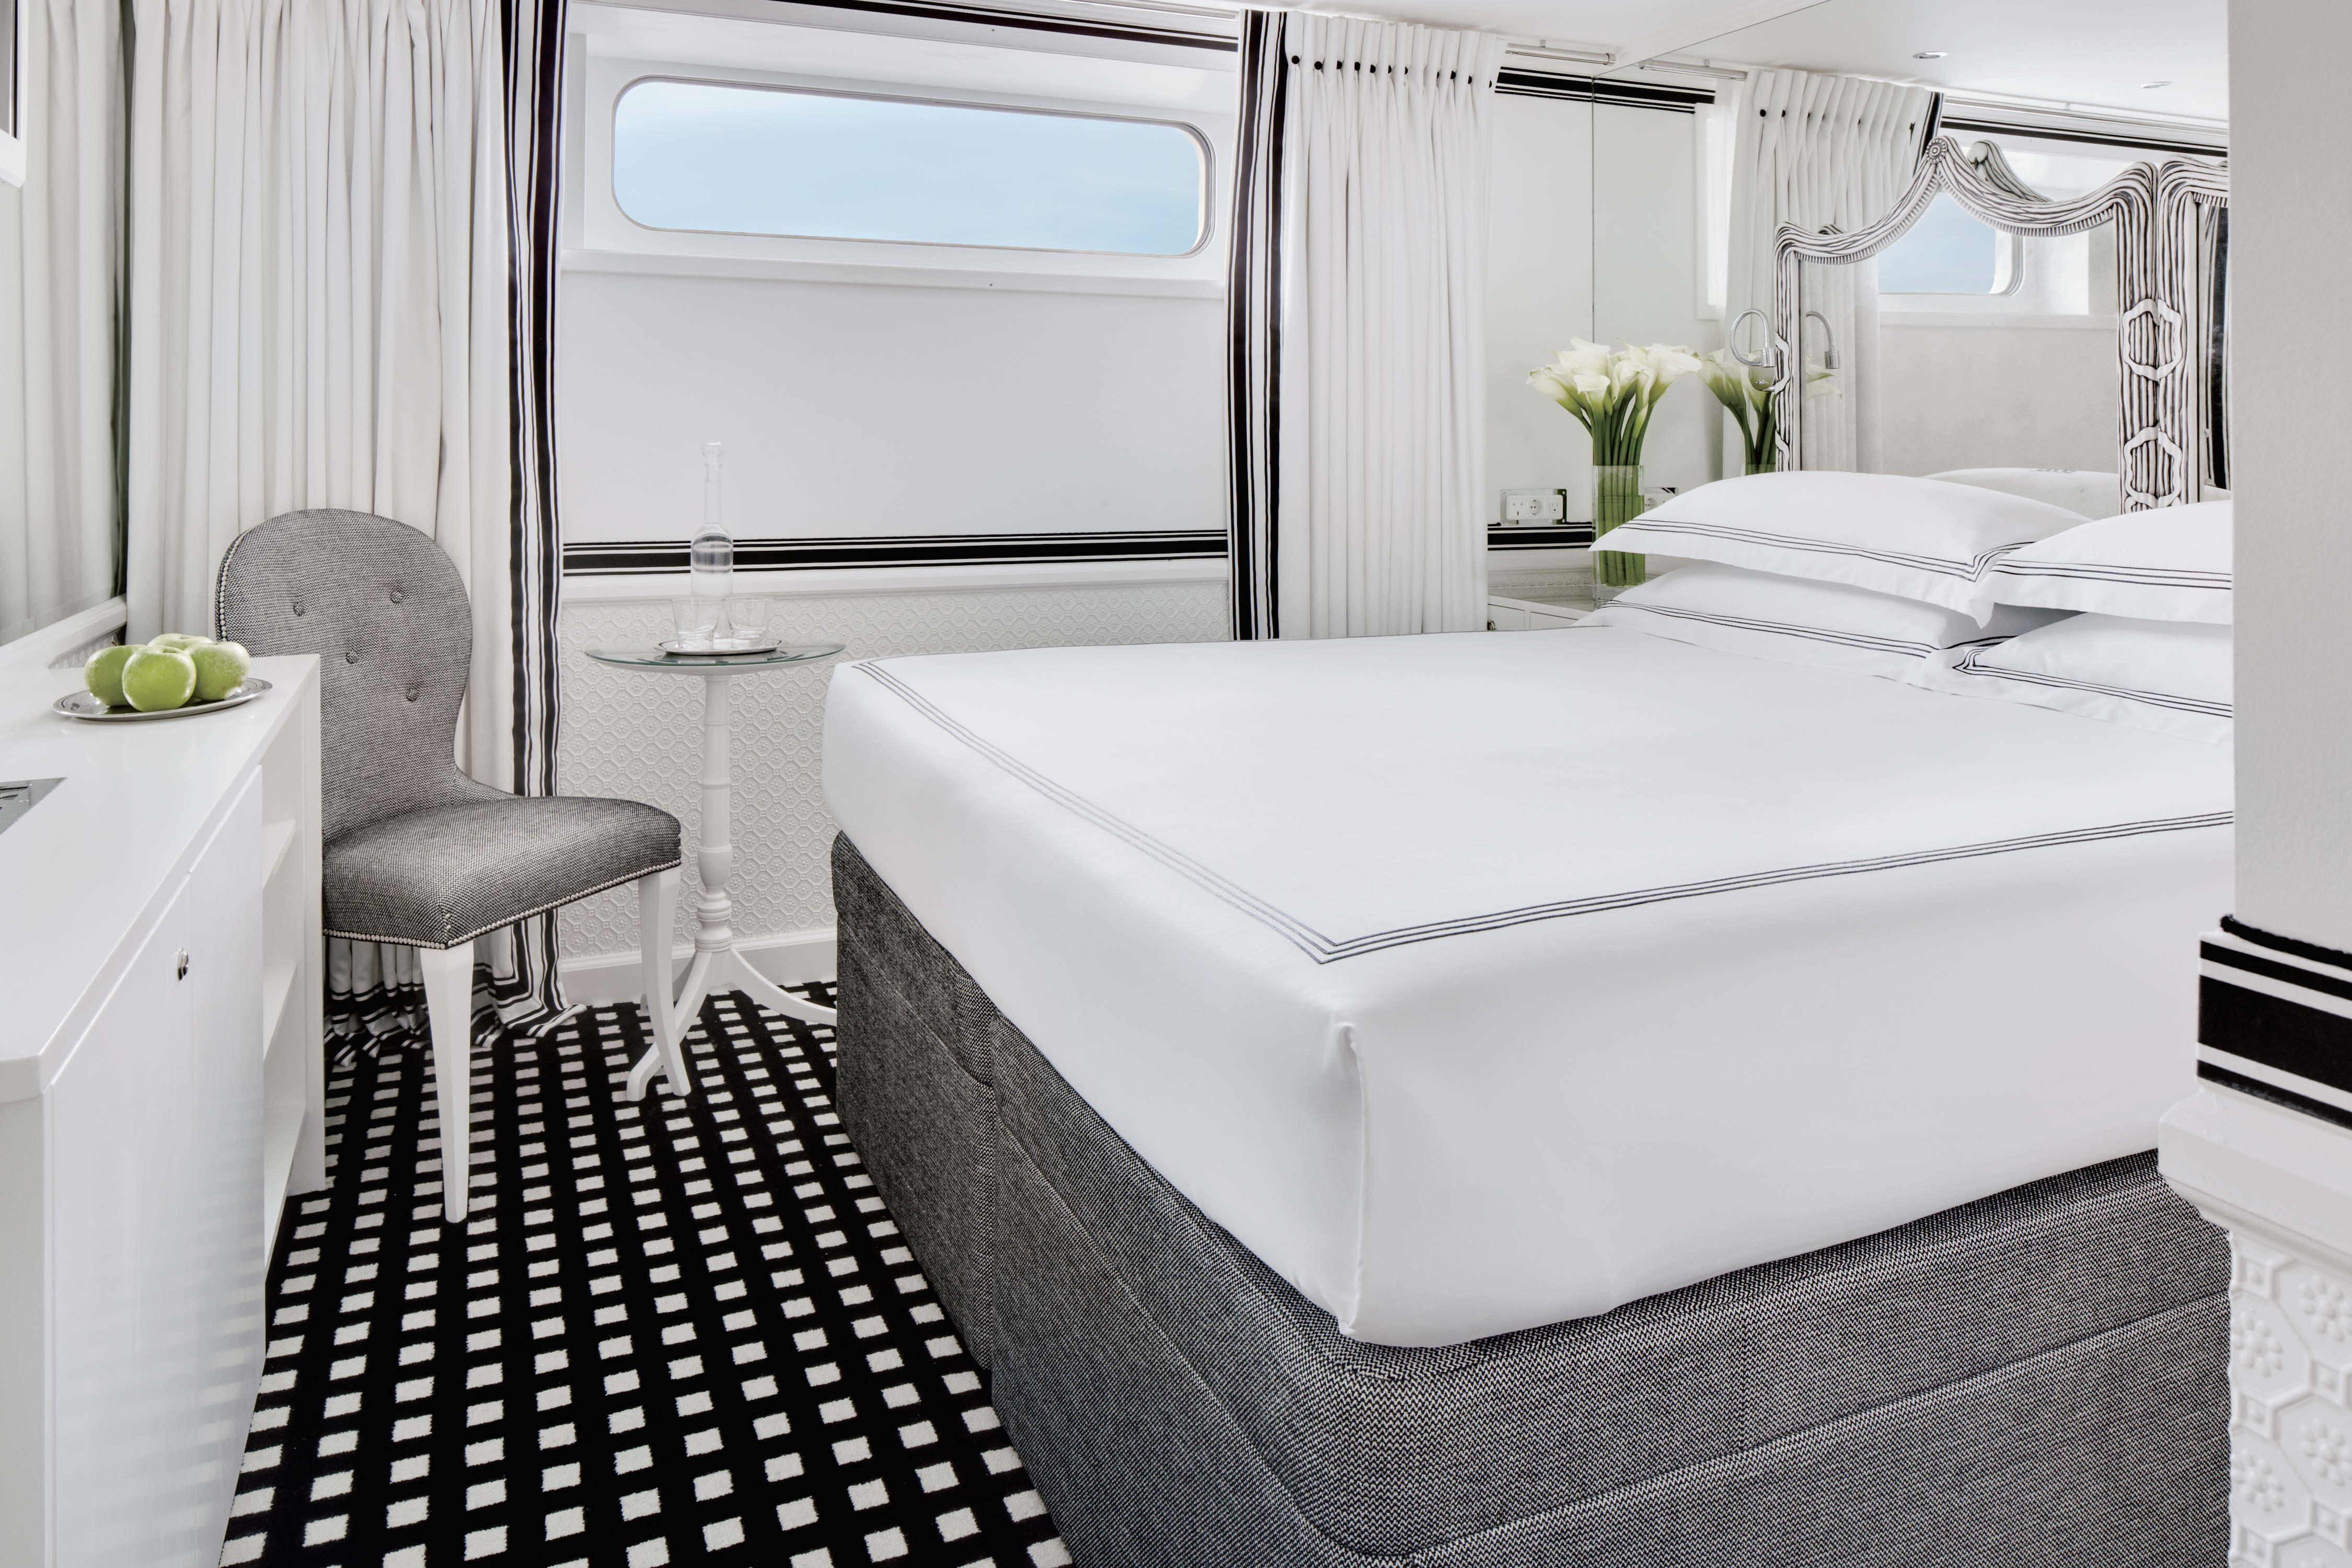 Category 4 & 5 Staterooms